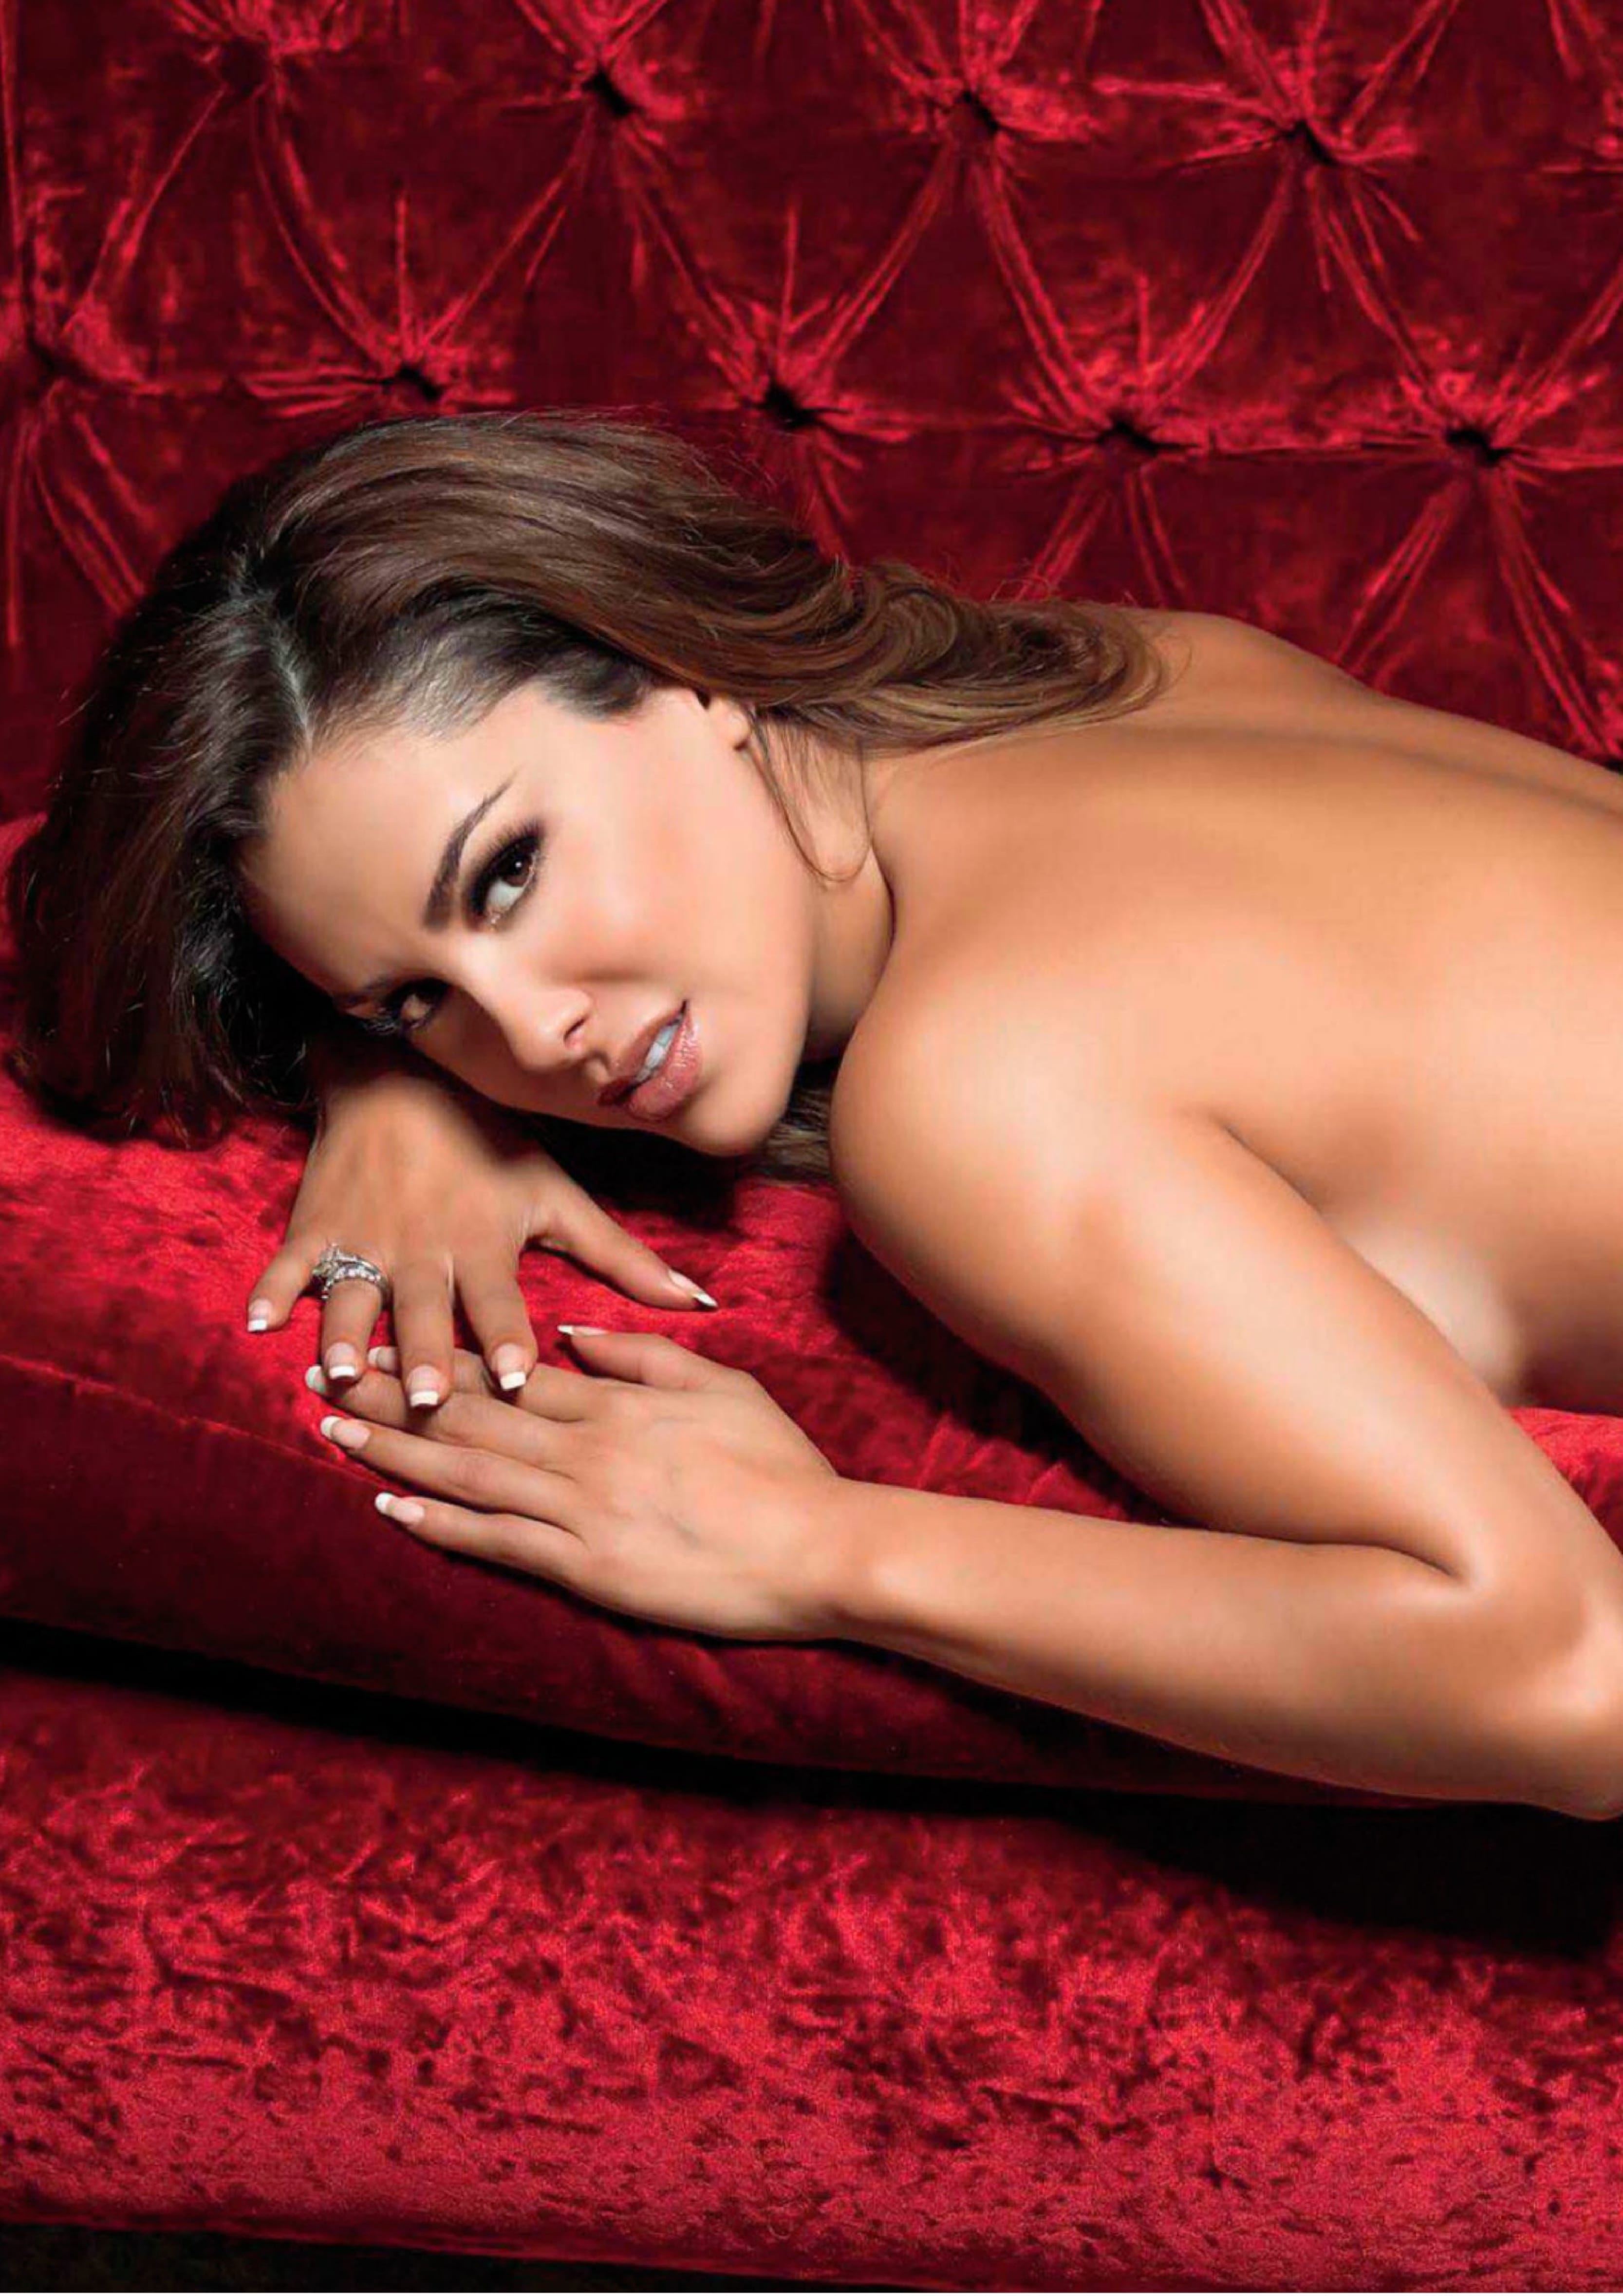 ninel-conde-nude-video-xxx-woman-using-strapon-dildo